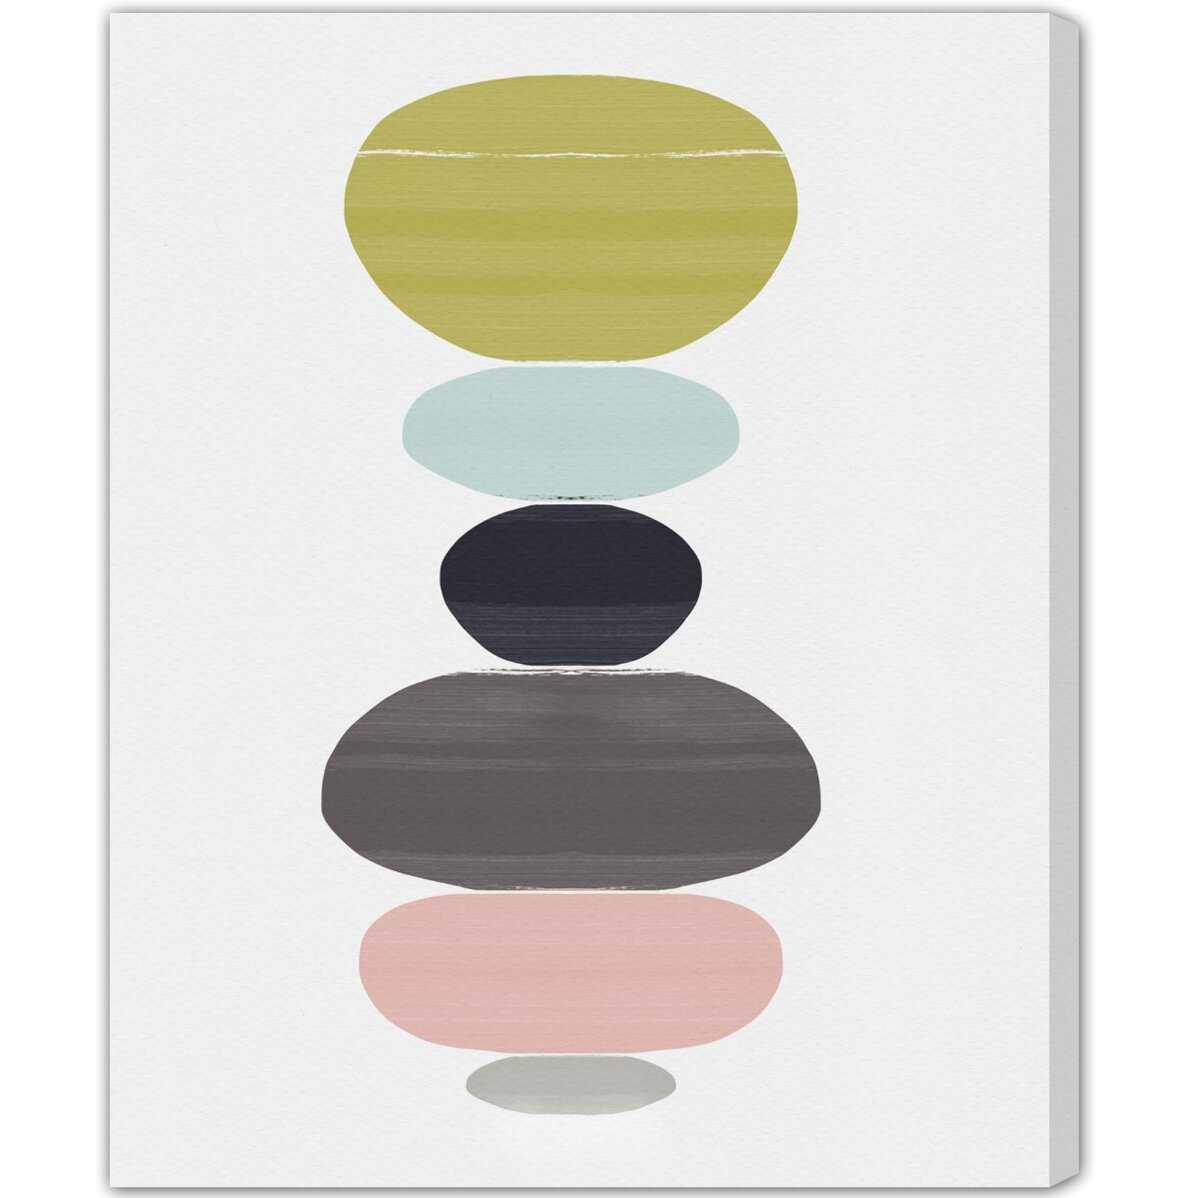 Co color art st louis - Color Art St Louis Perfect Balance Graphic Art On Wrapped Canvas